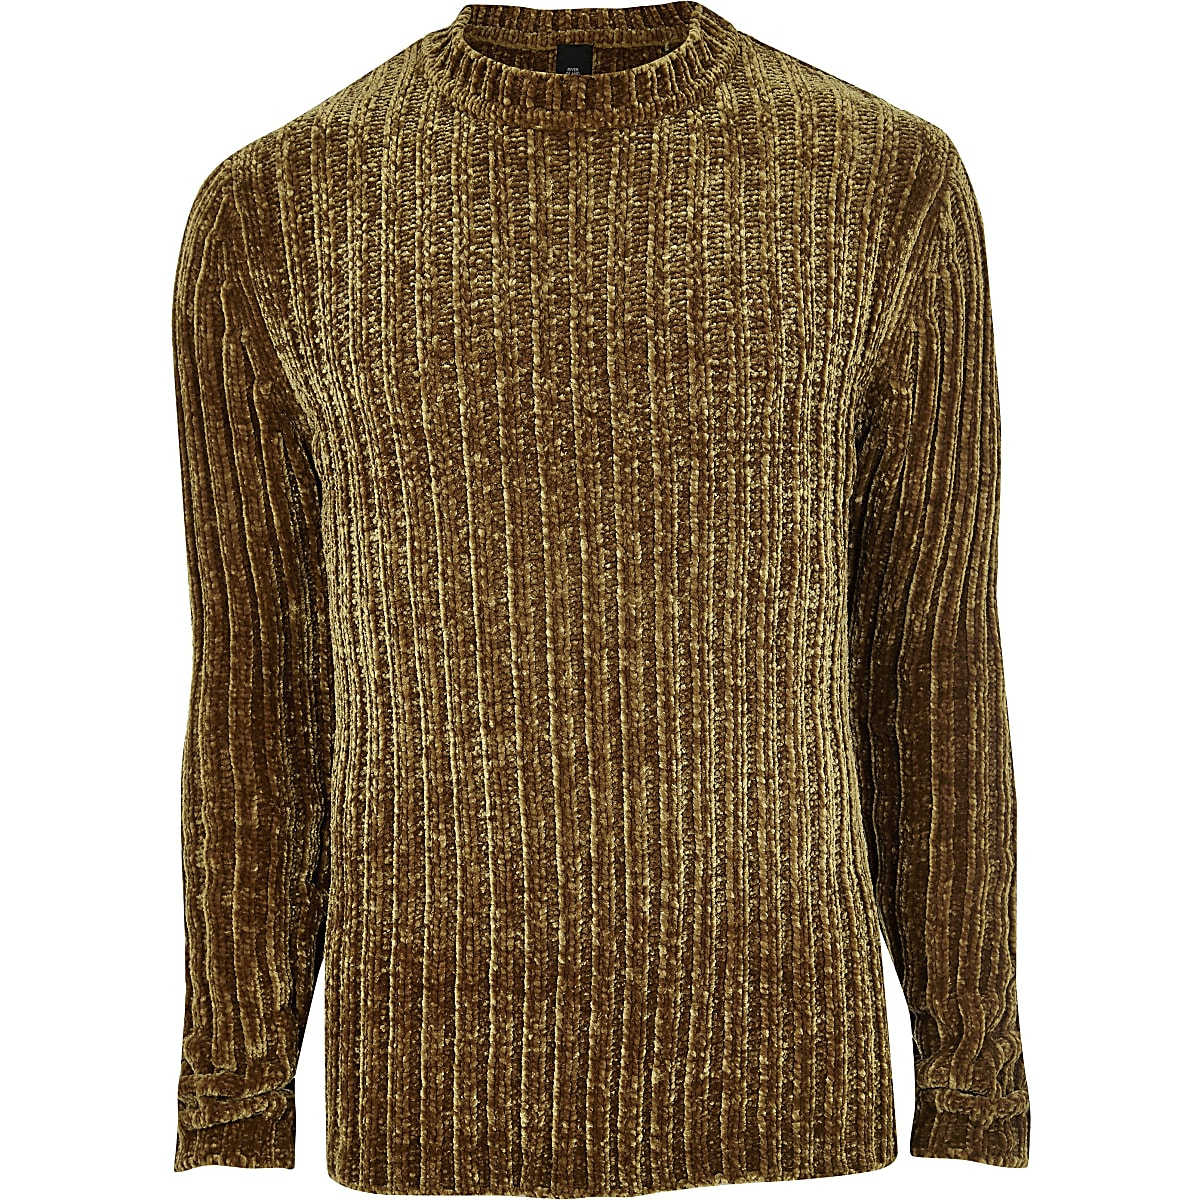 5c67a103b5e002 Brown muscle fit chenille knit sweater - Sweaters - Sweaters ...